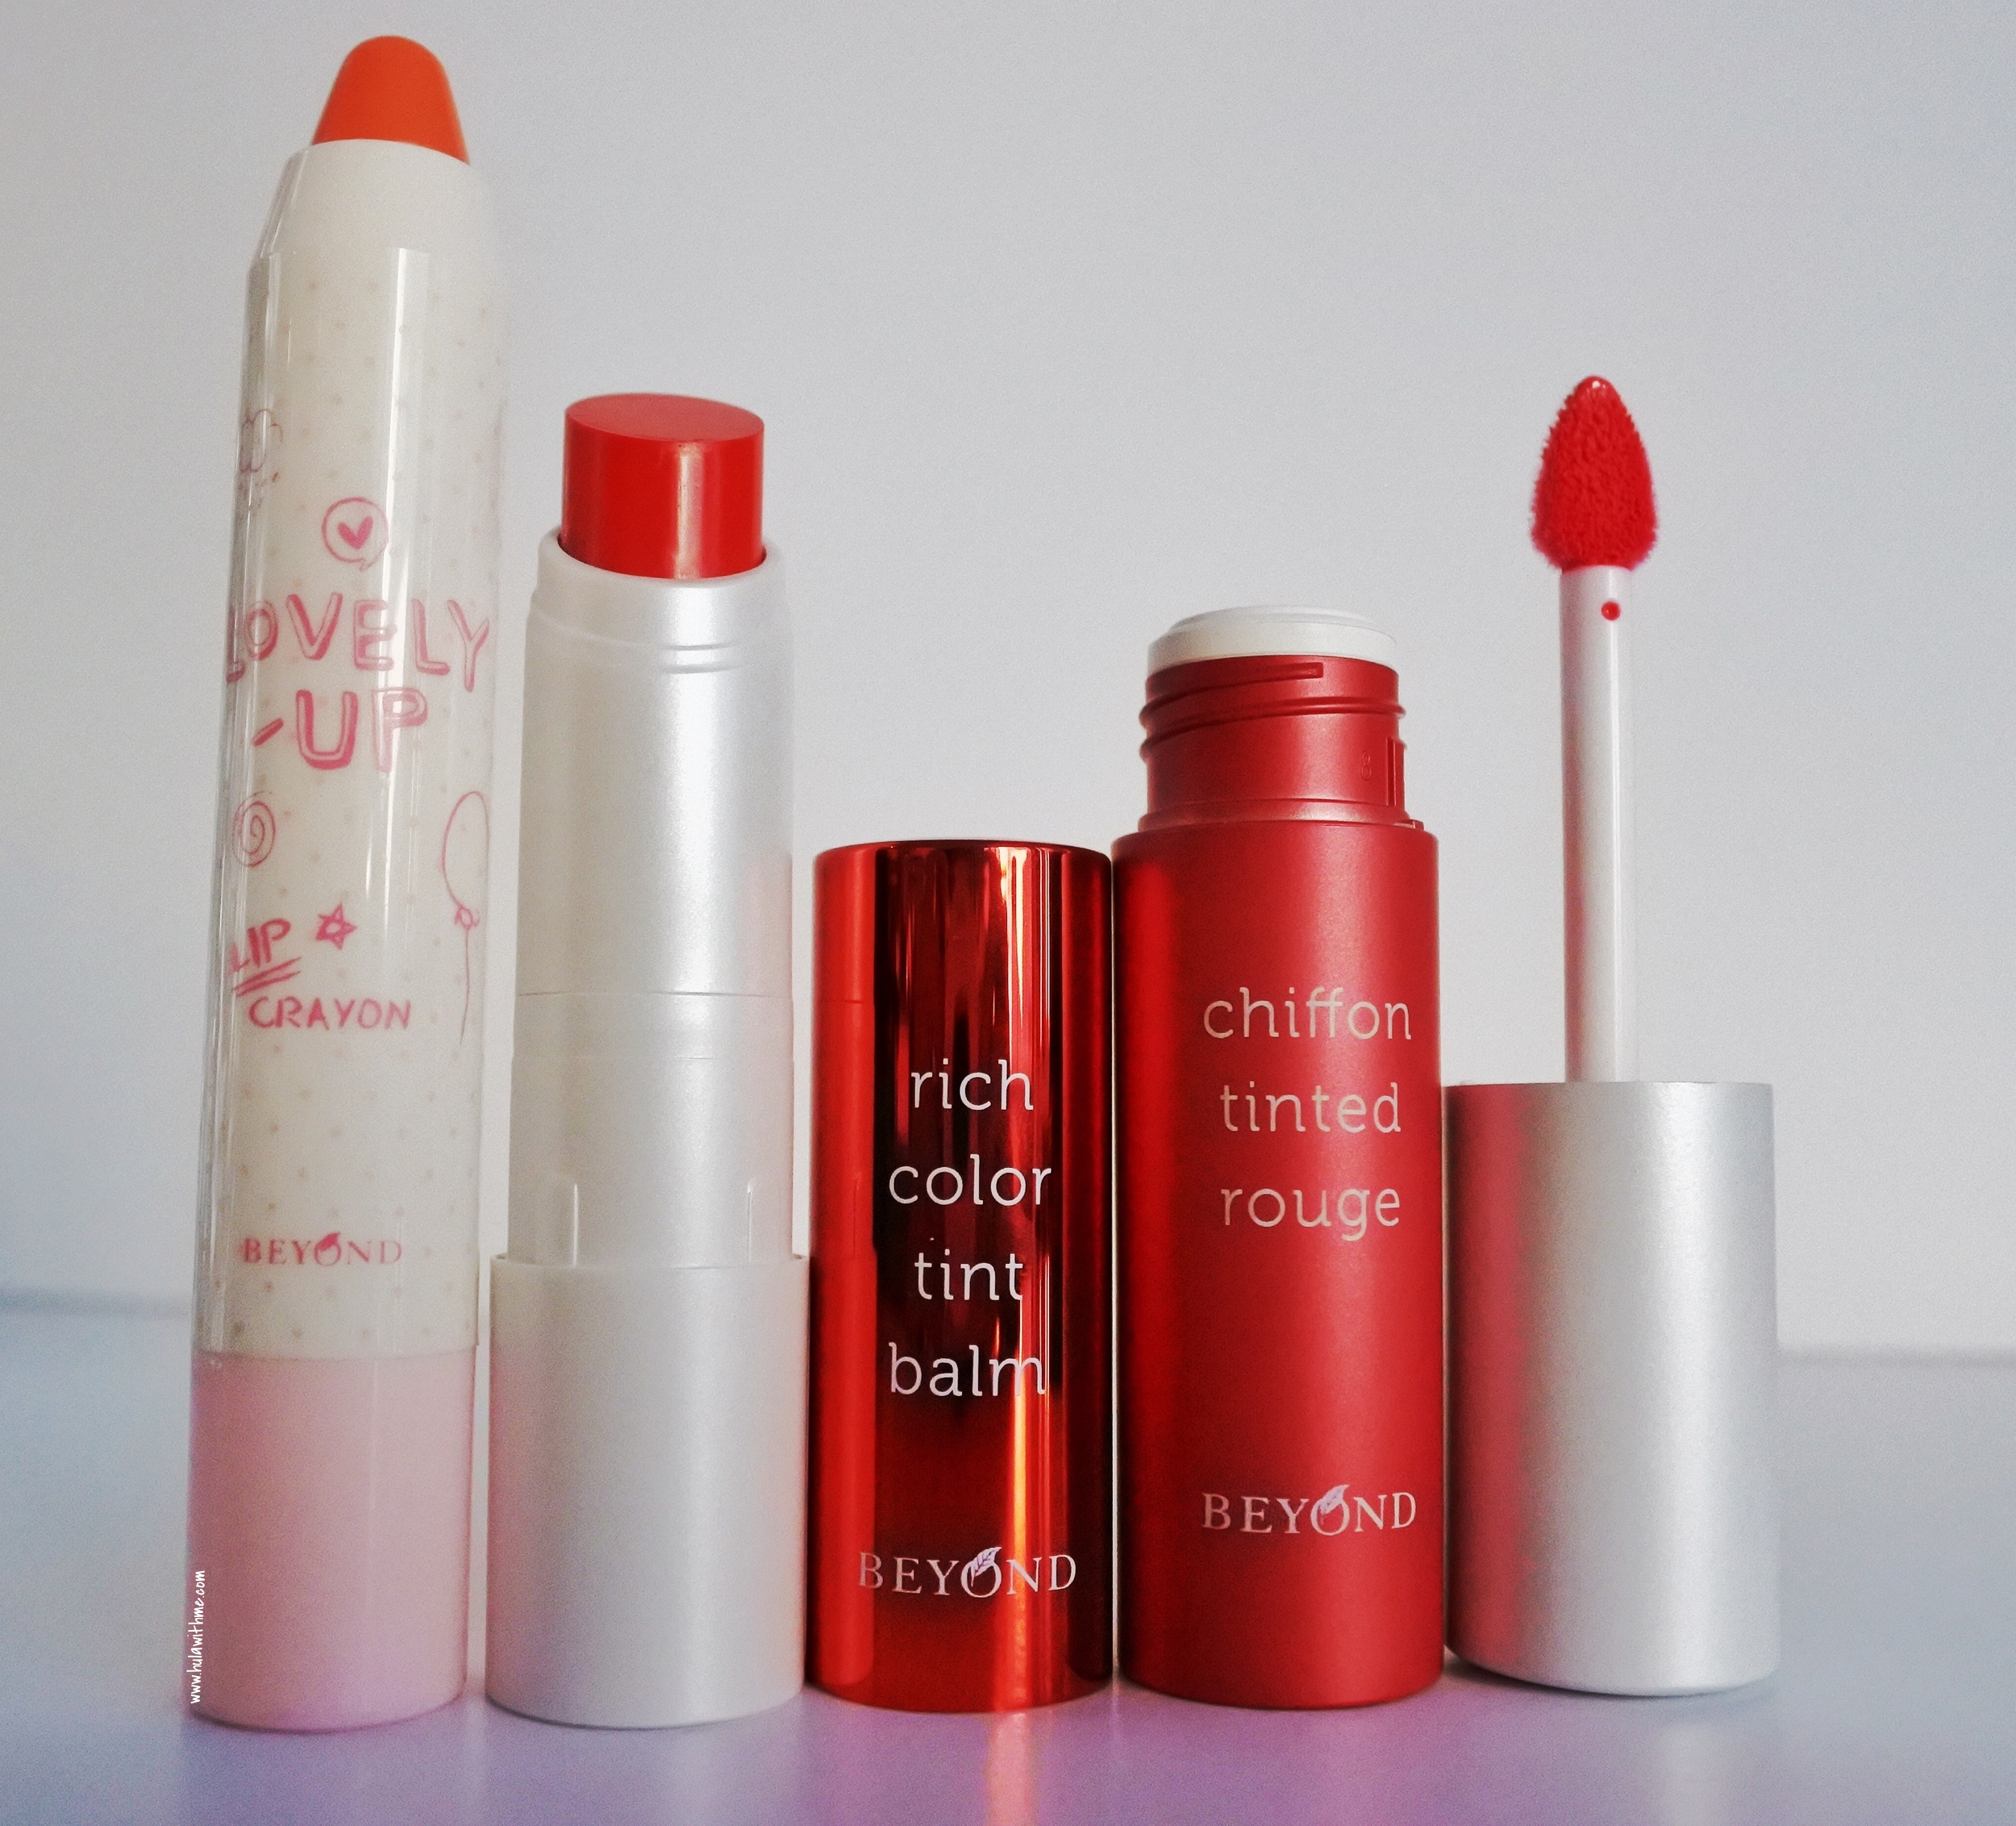 Lip crayon, lip balm, tinted lip from Beyond Beauty.